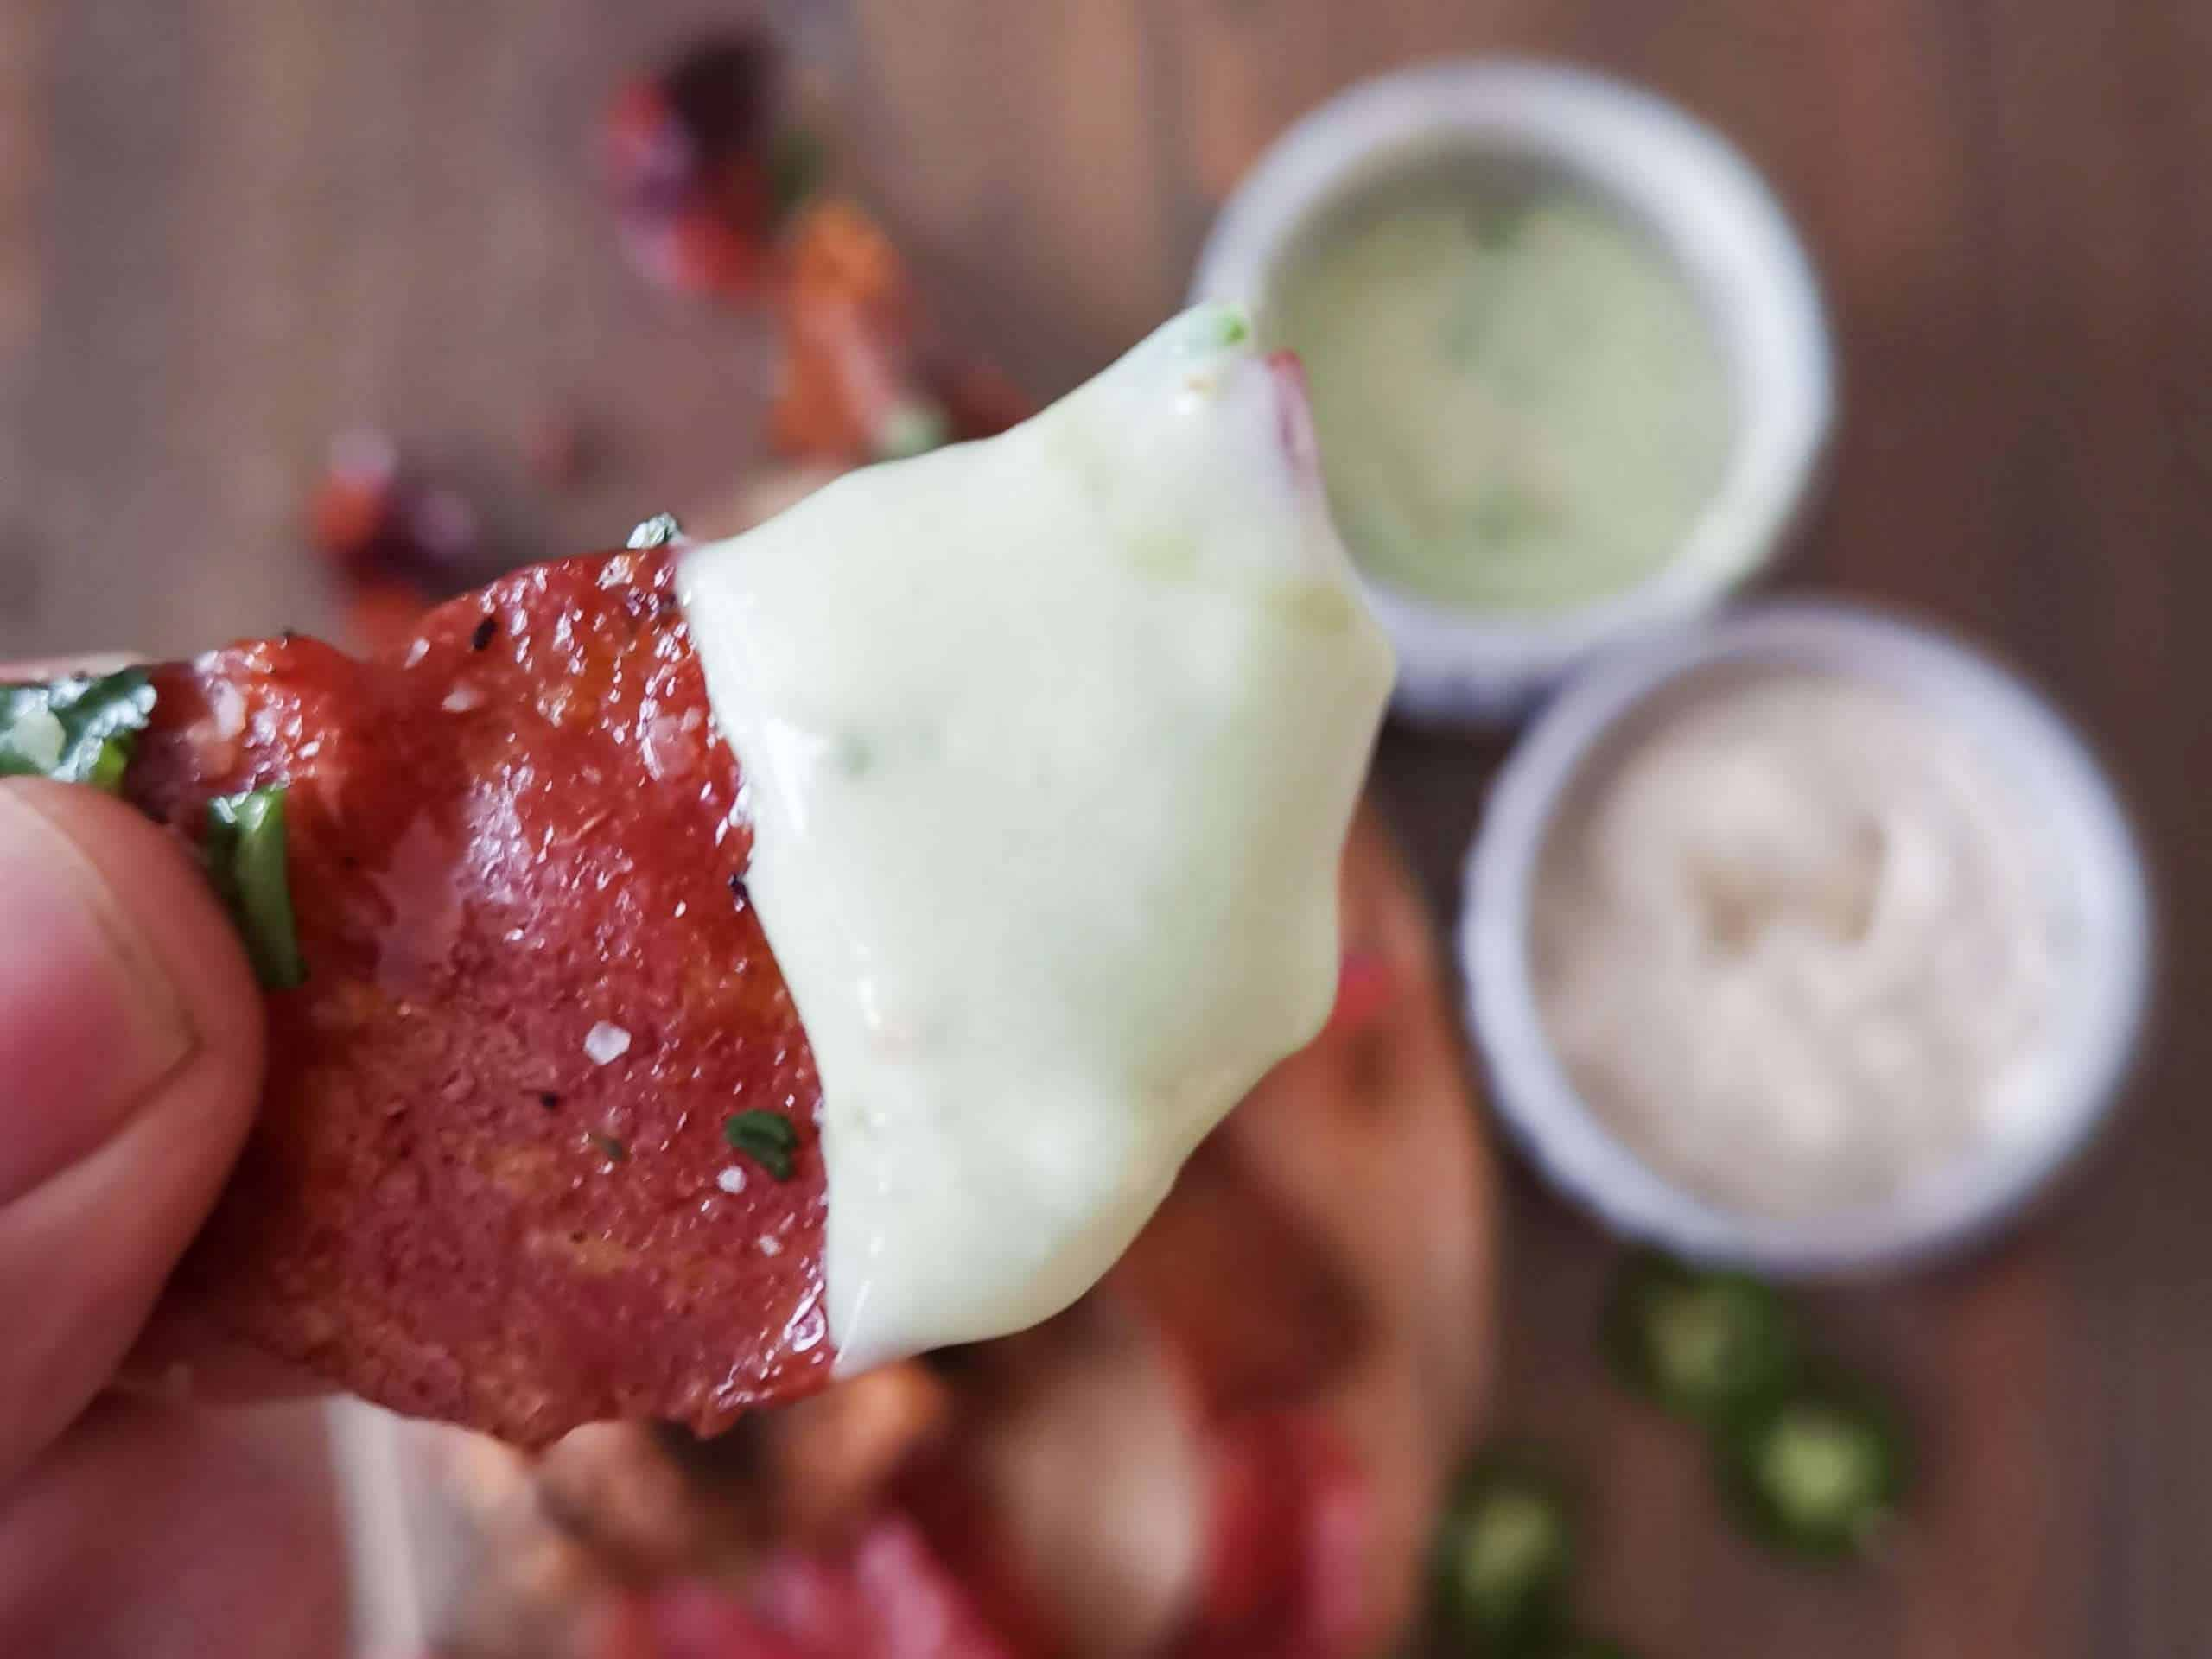 Keto friendly chips made from baked salami with dip